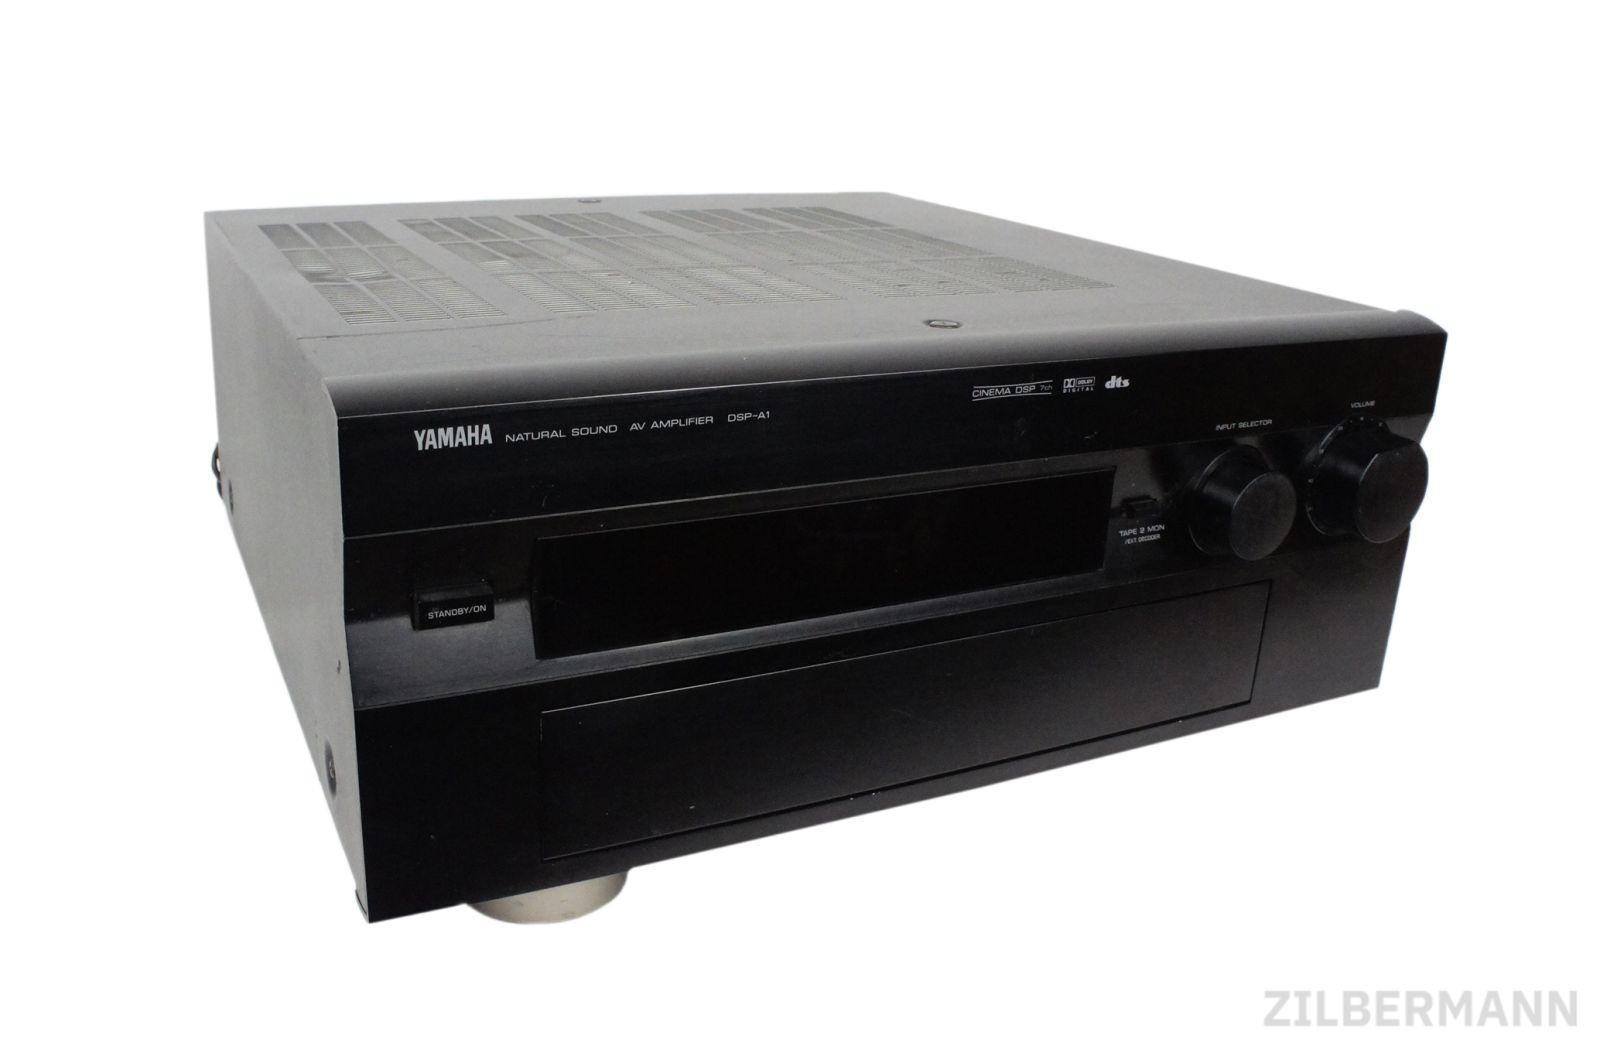 Yamaha_7.1_High_End_AV_Receiver_DSP-A1_Natural_Sound_02